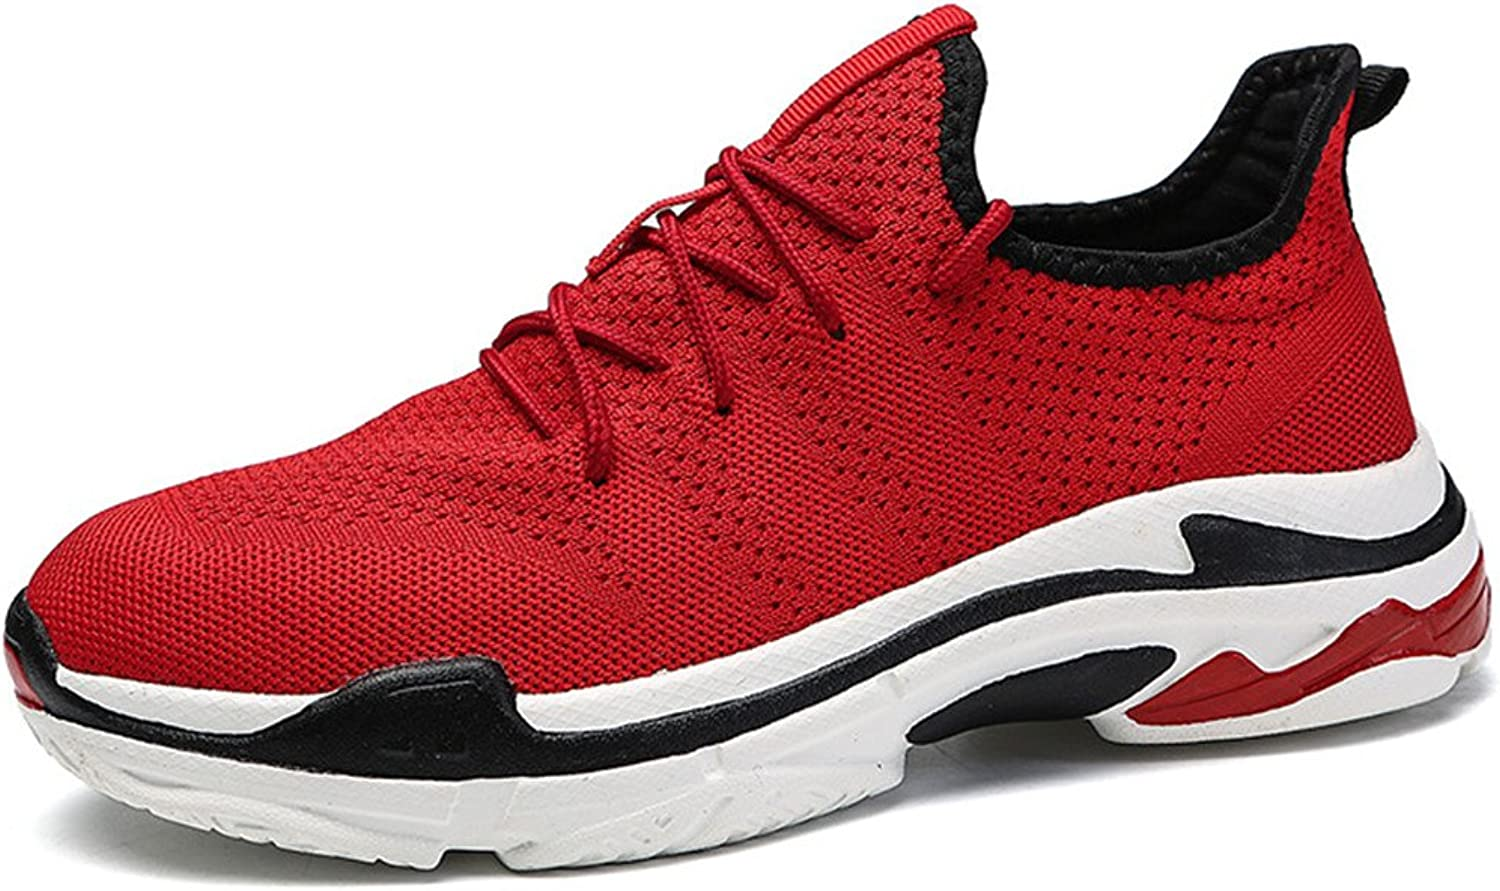 SKY-Maria Men's Fashion Breathable Running shoes Comfortable Light Trainers Non-Slip Outdoor Sports shoes SIZE 39-46